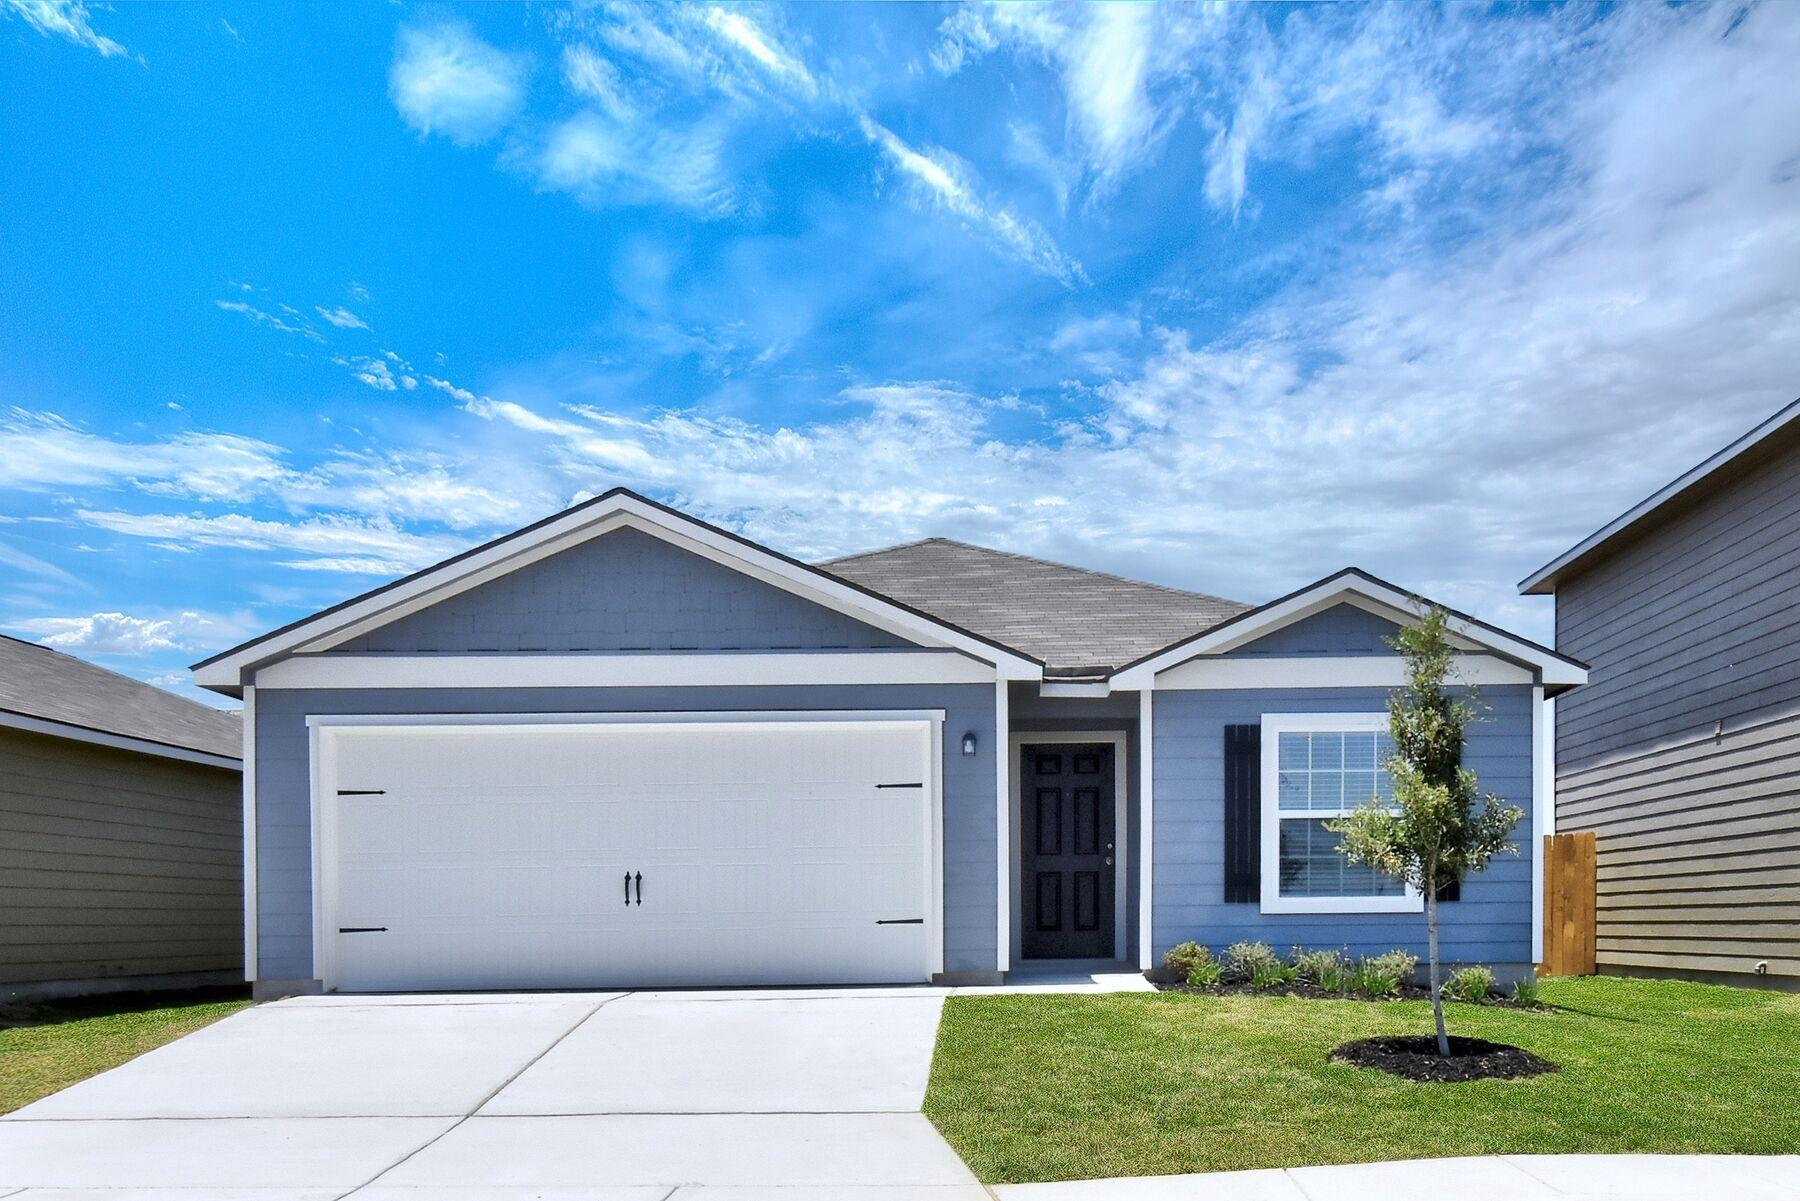 The Maple by LGI Homes:The Maple plan has 3 bedrooms, 2 full baths, and a 2-car garage!